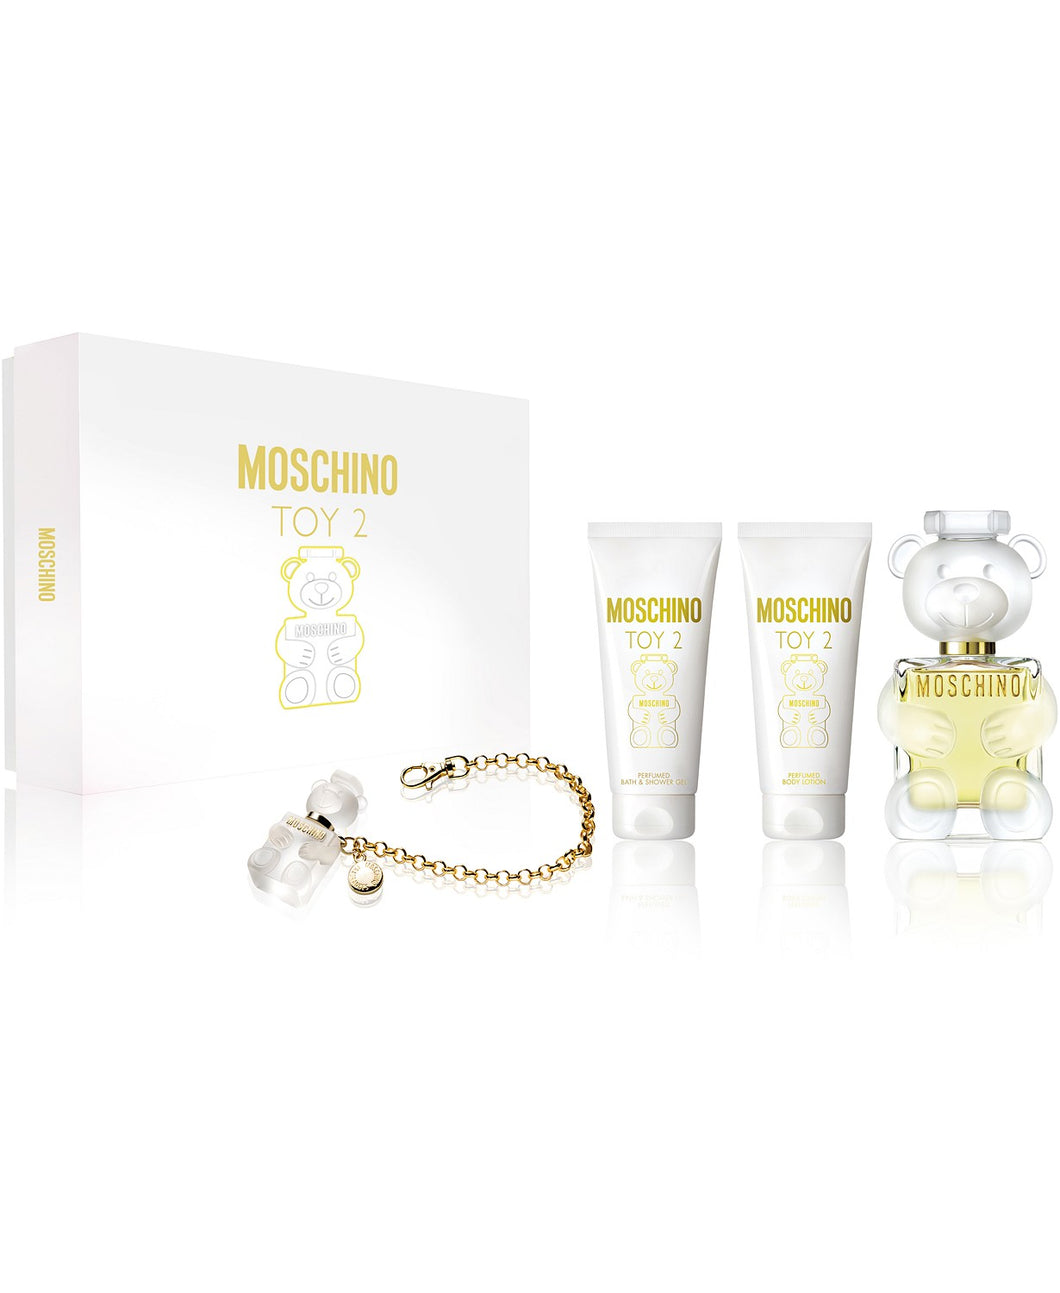 moschino toy 2 gift set 4 pcs eau de parfum 3.4oz for womens - alwaysspecialgifts.com